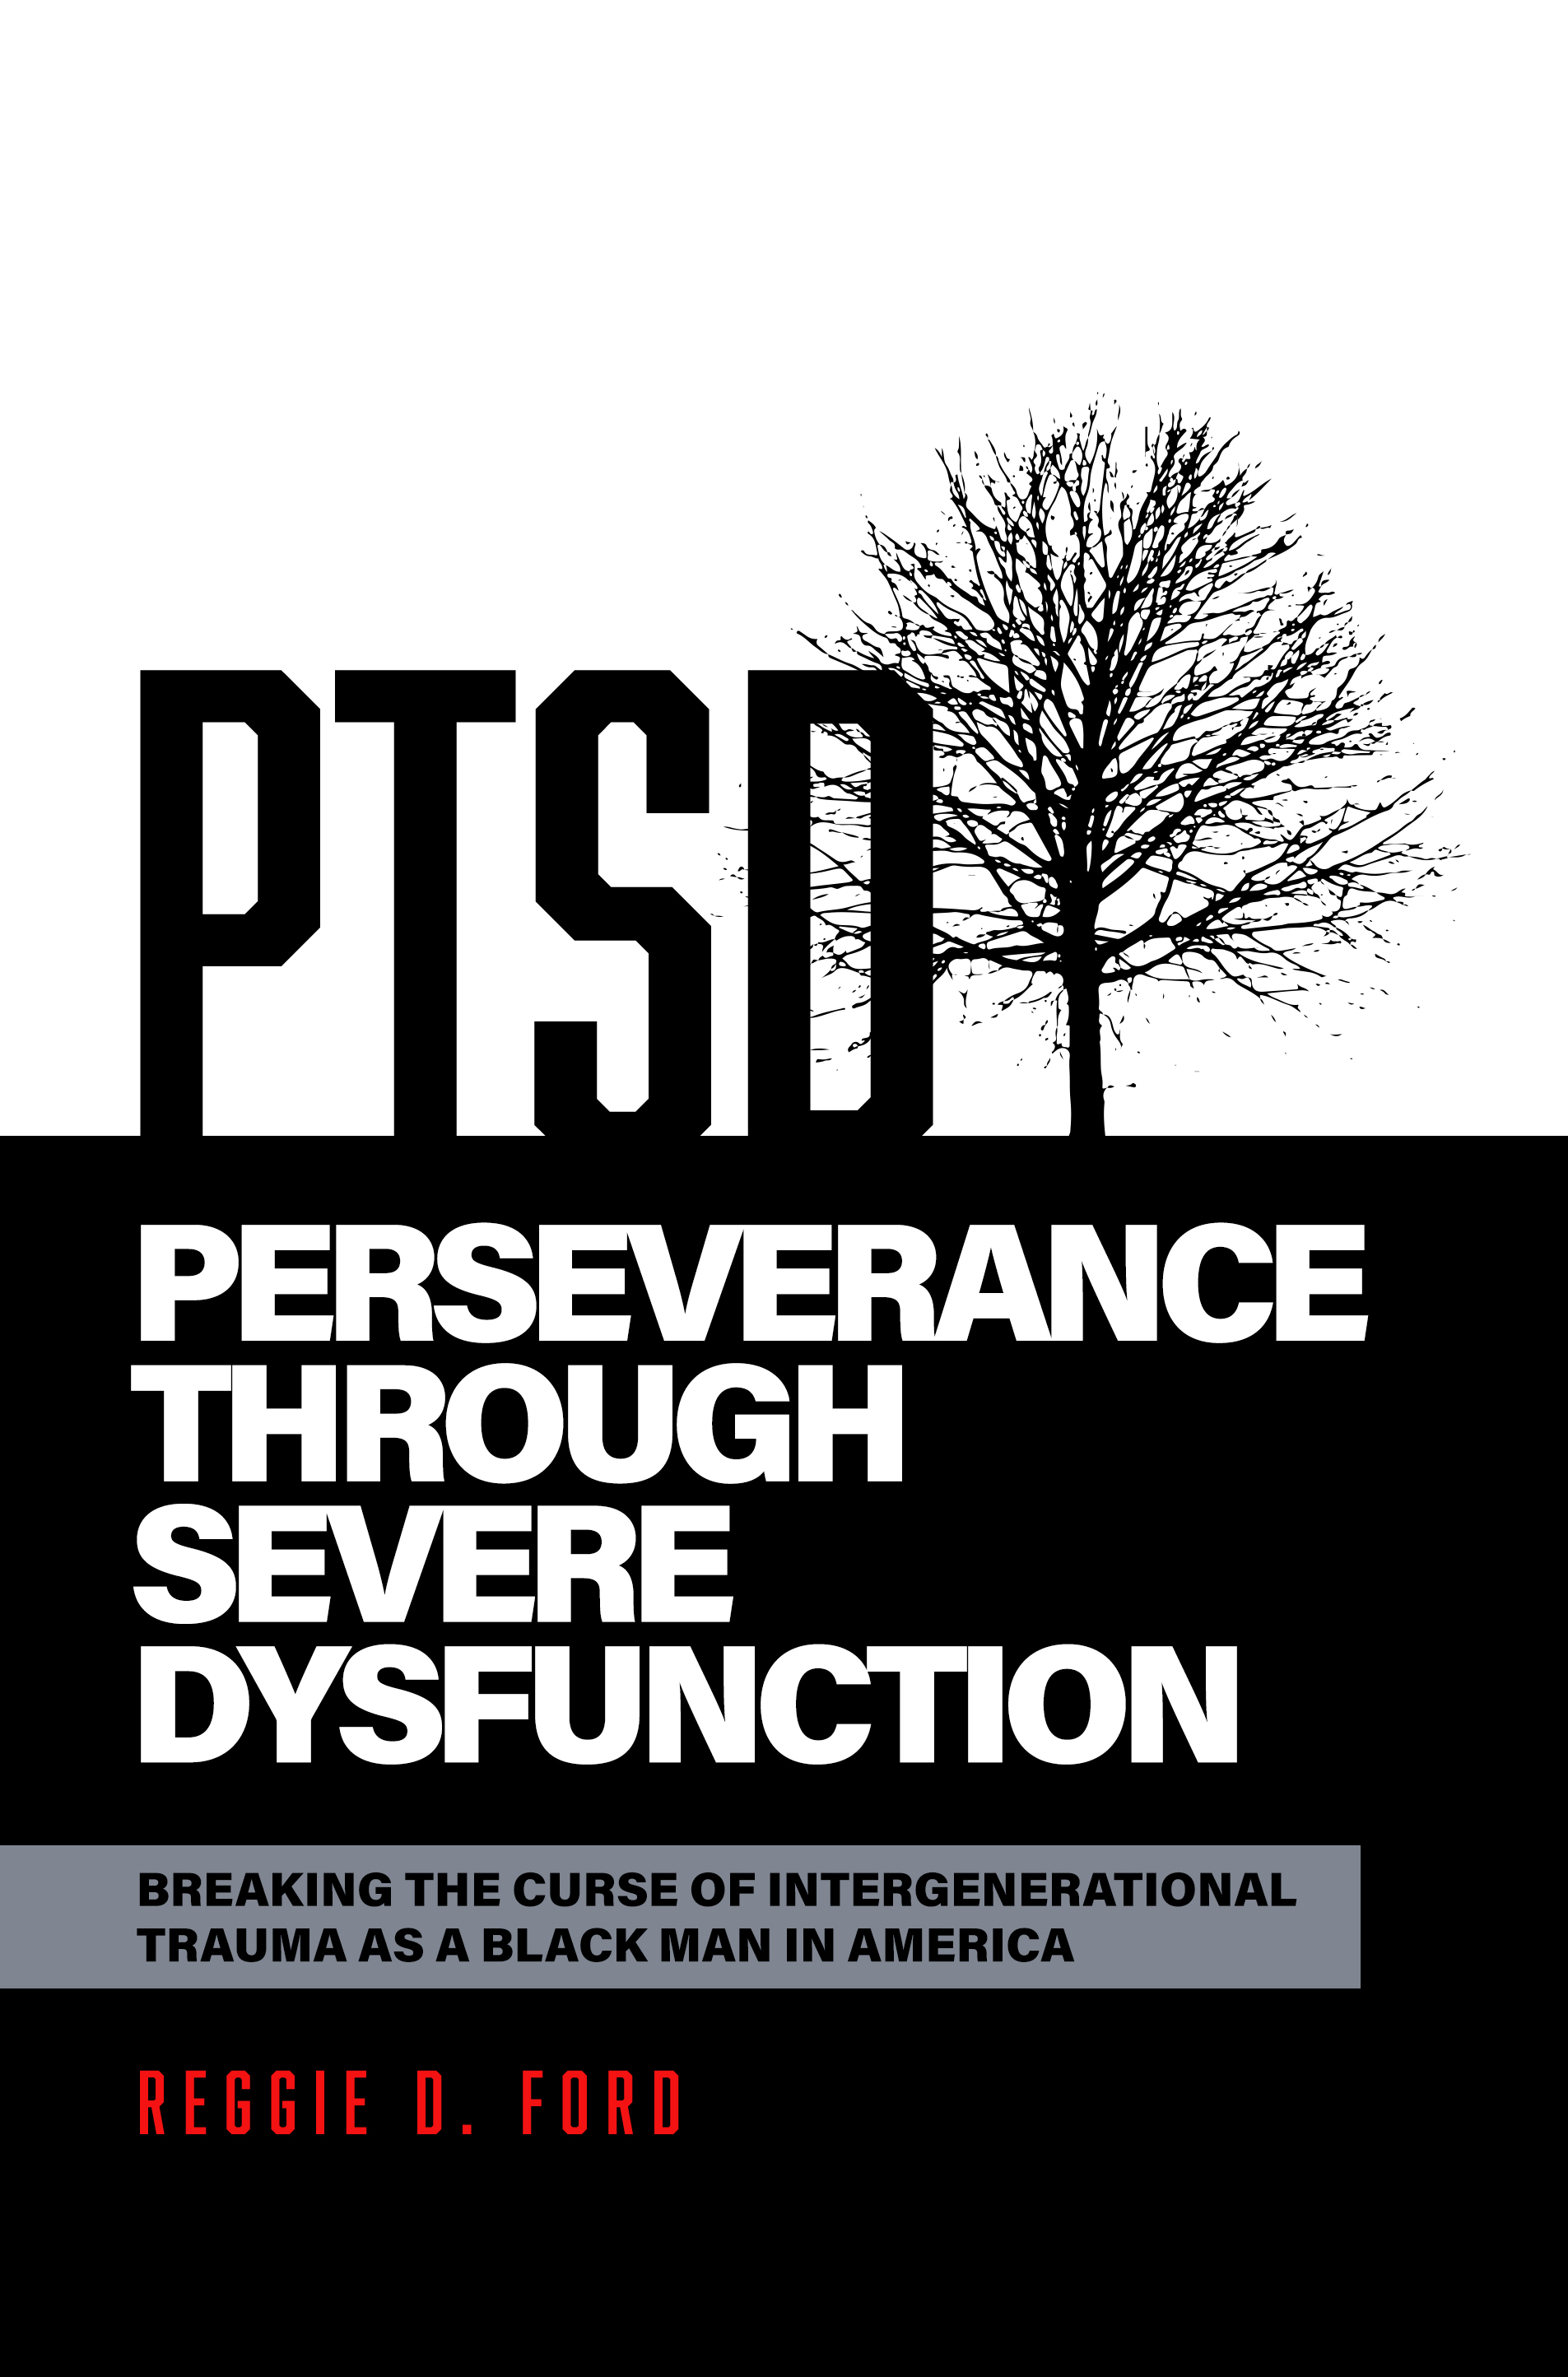 Perseverance Through Severe Dysfunction: Breaking the Curse of Intergenerational Trauma as a Black Man in America